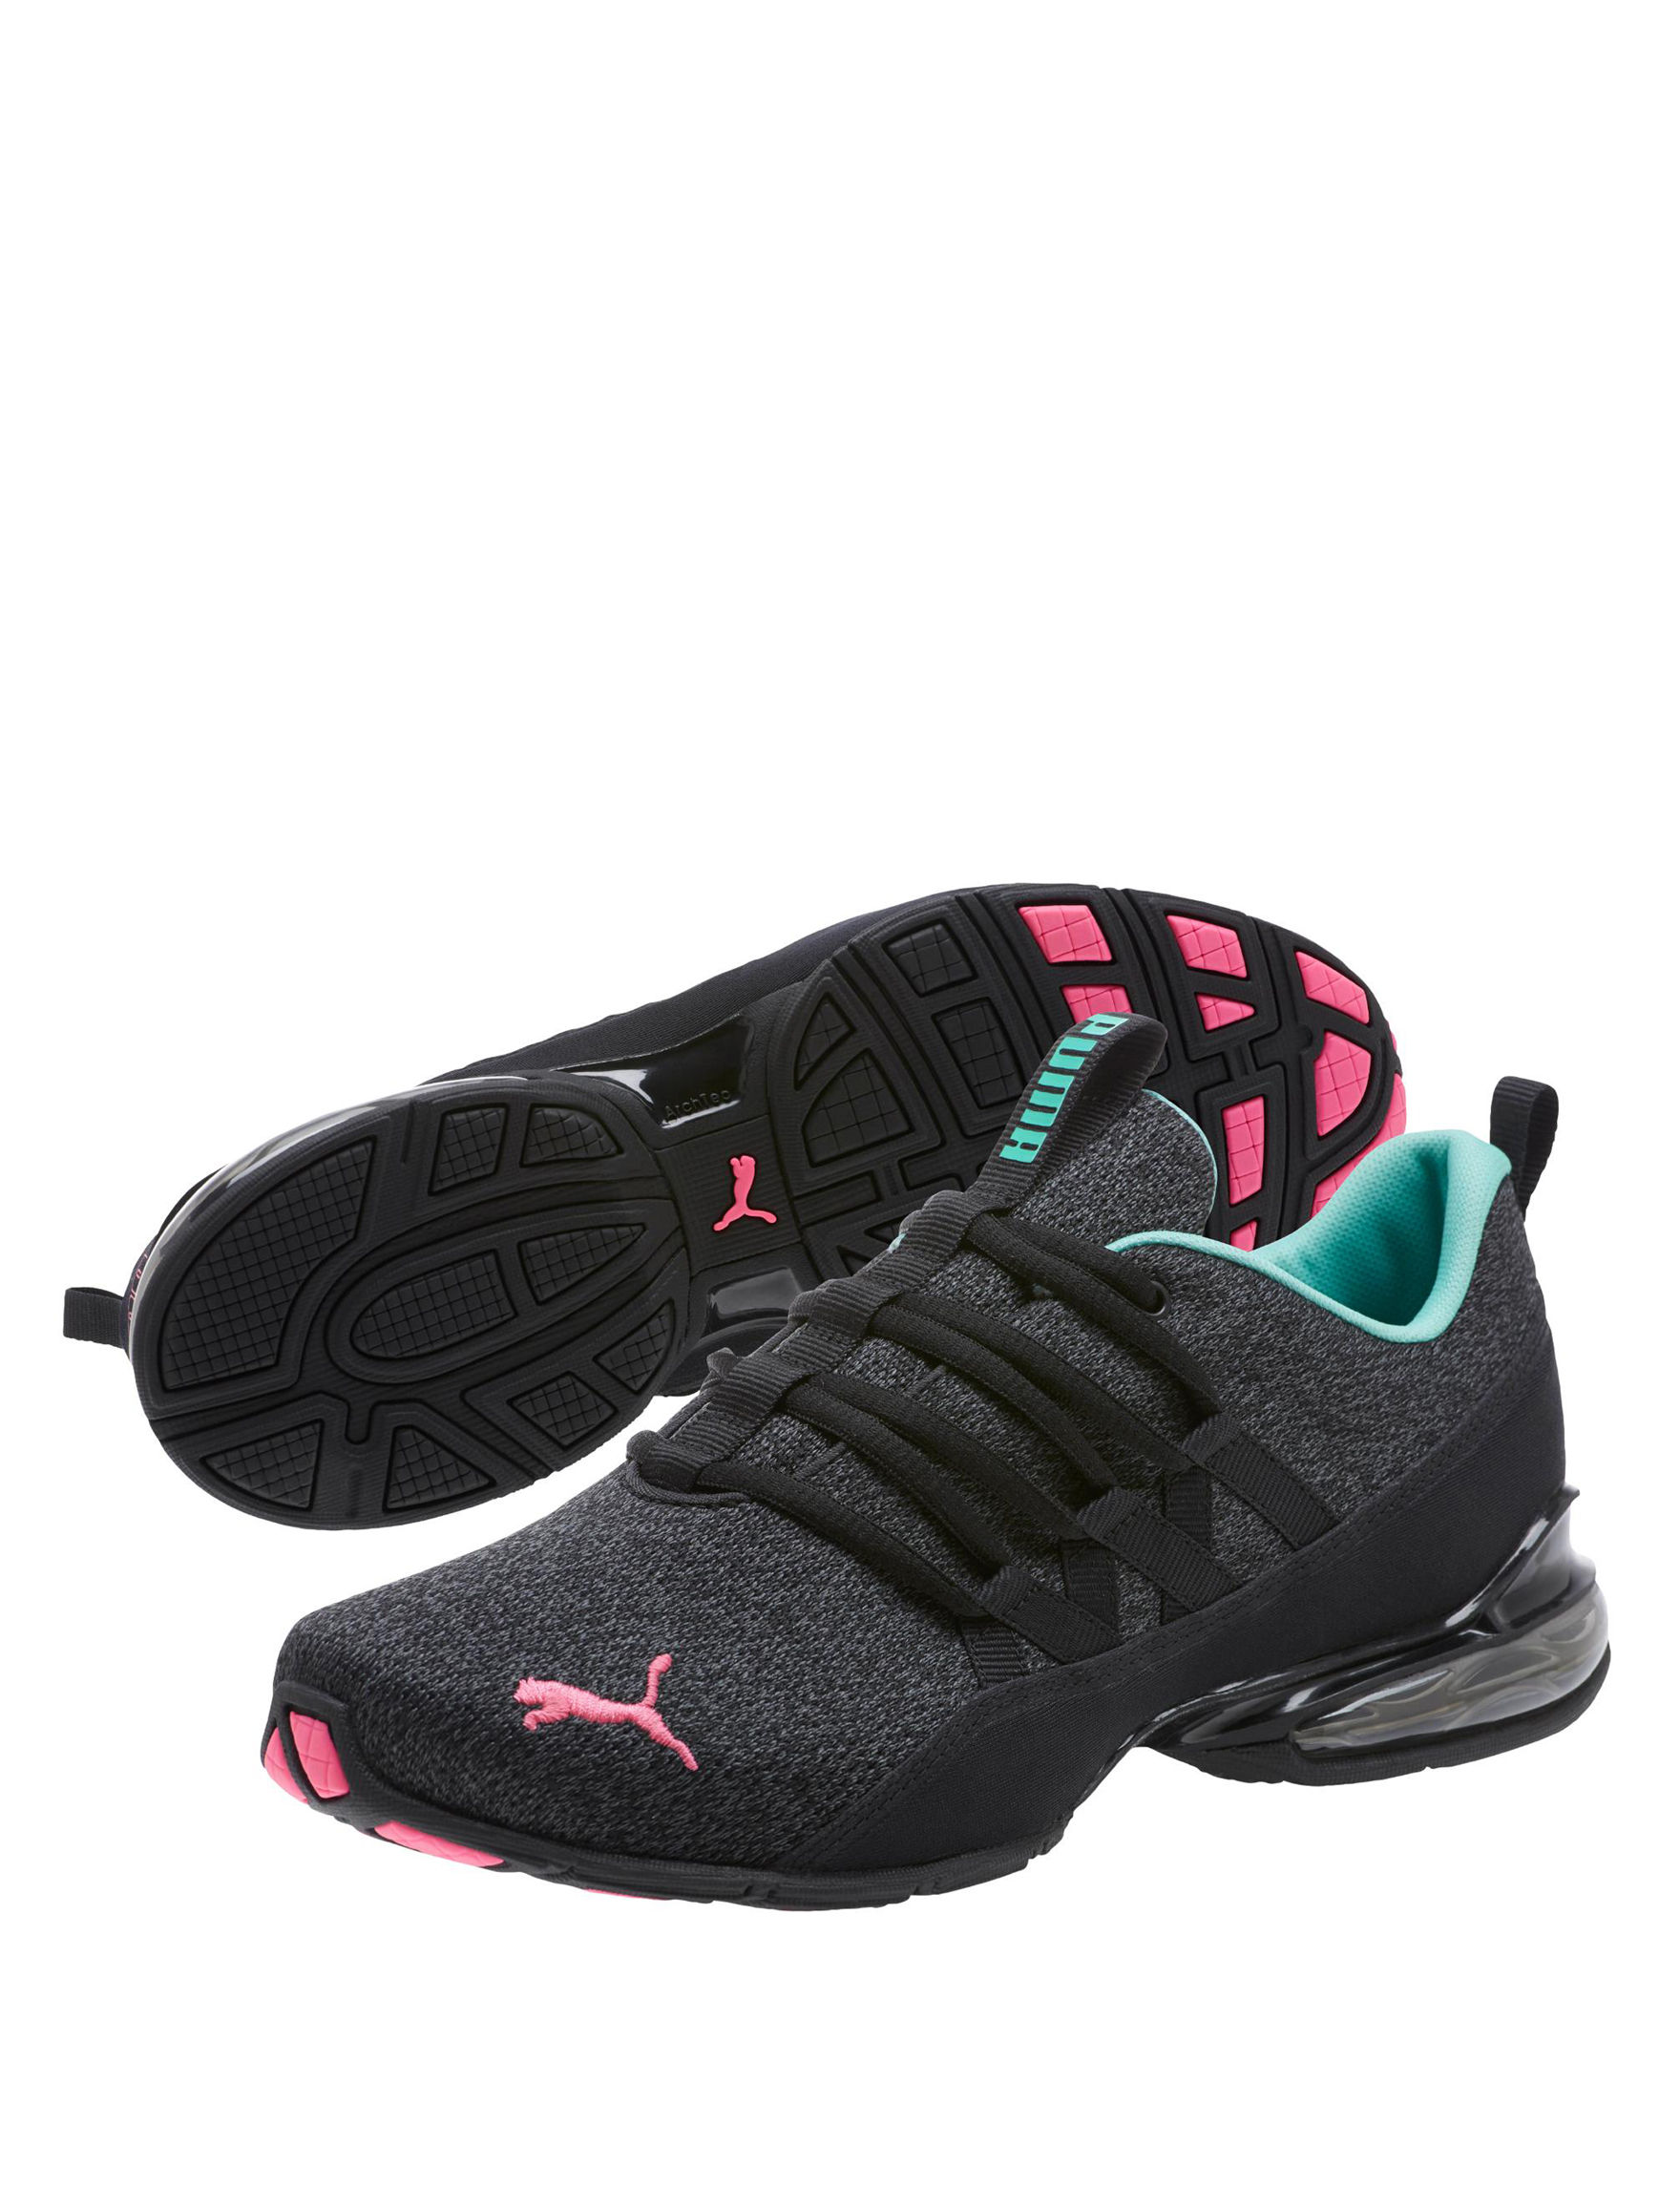 Puma Riaze Prowl Athletic Shoes - Rebate Available af900a55e